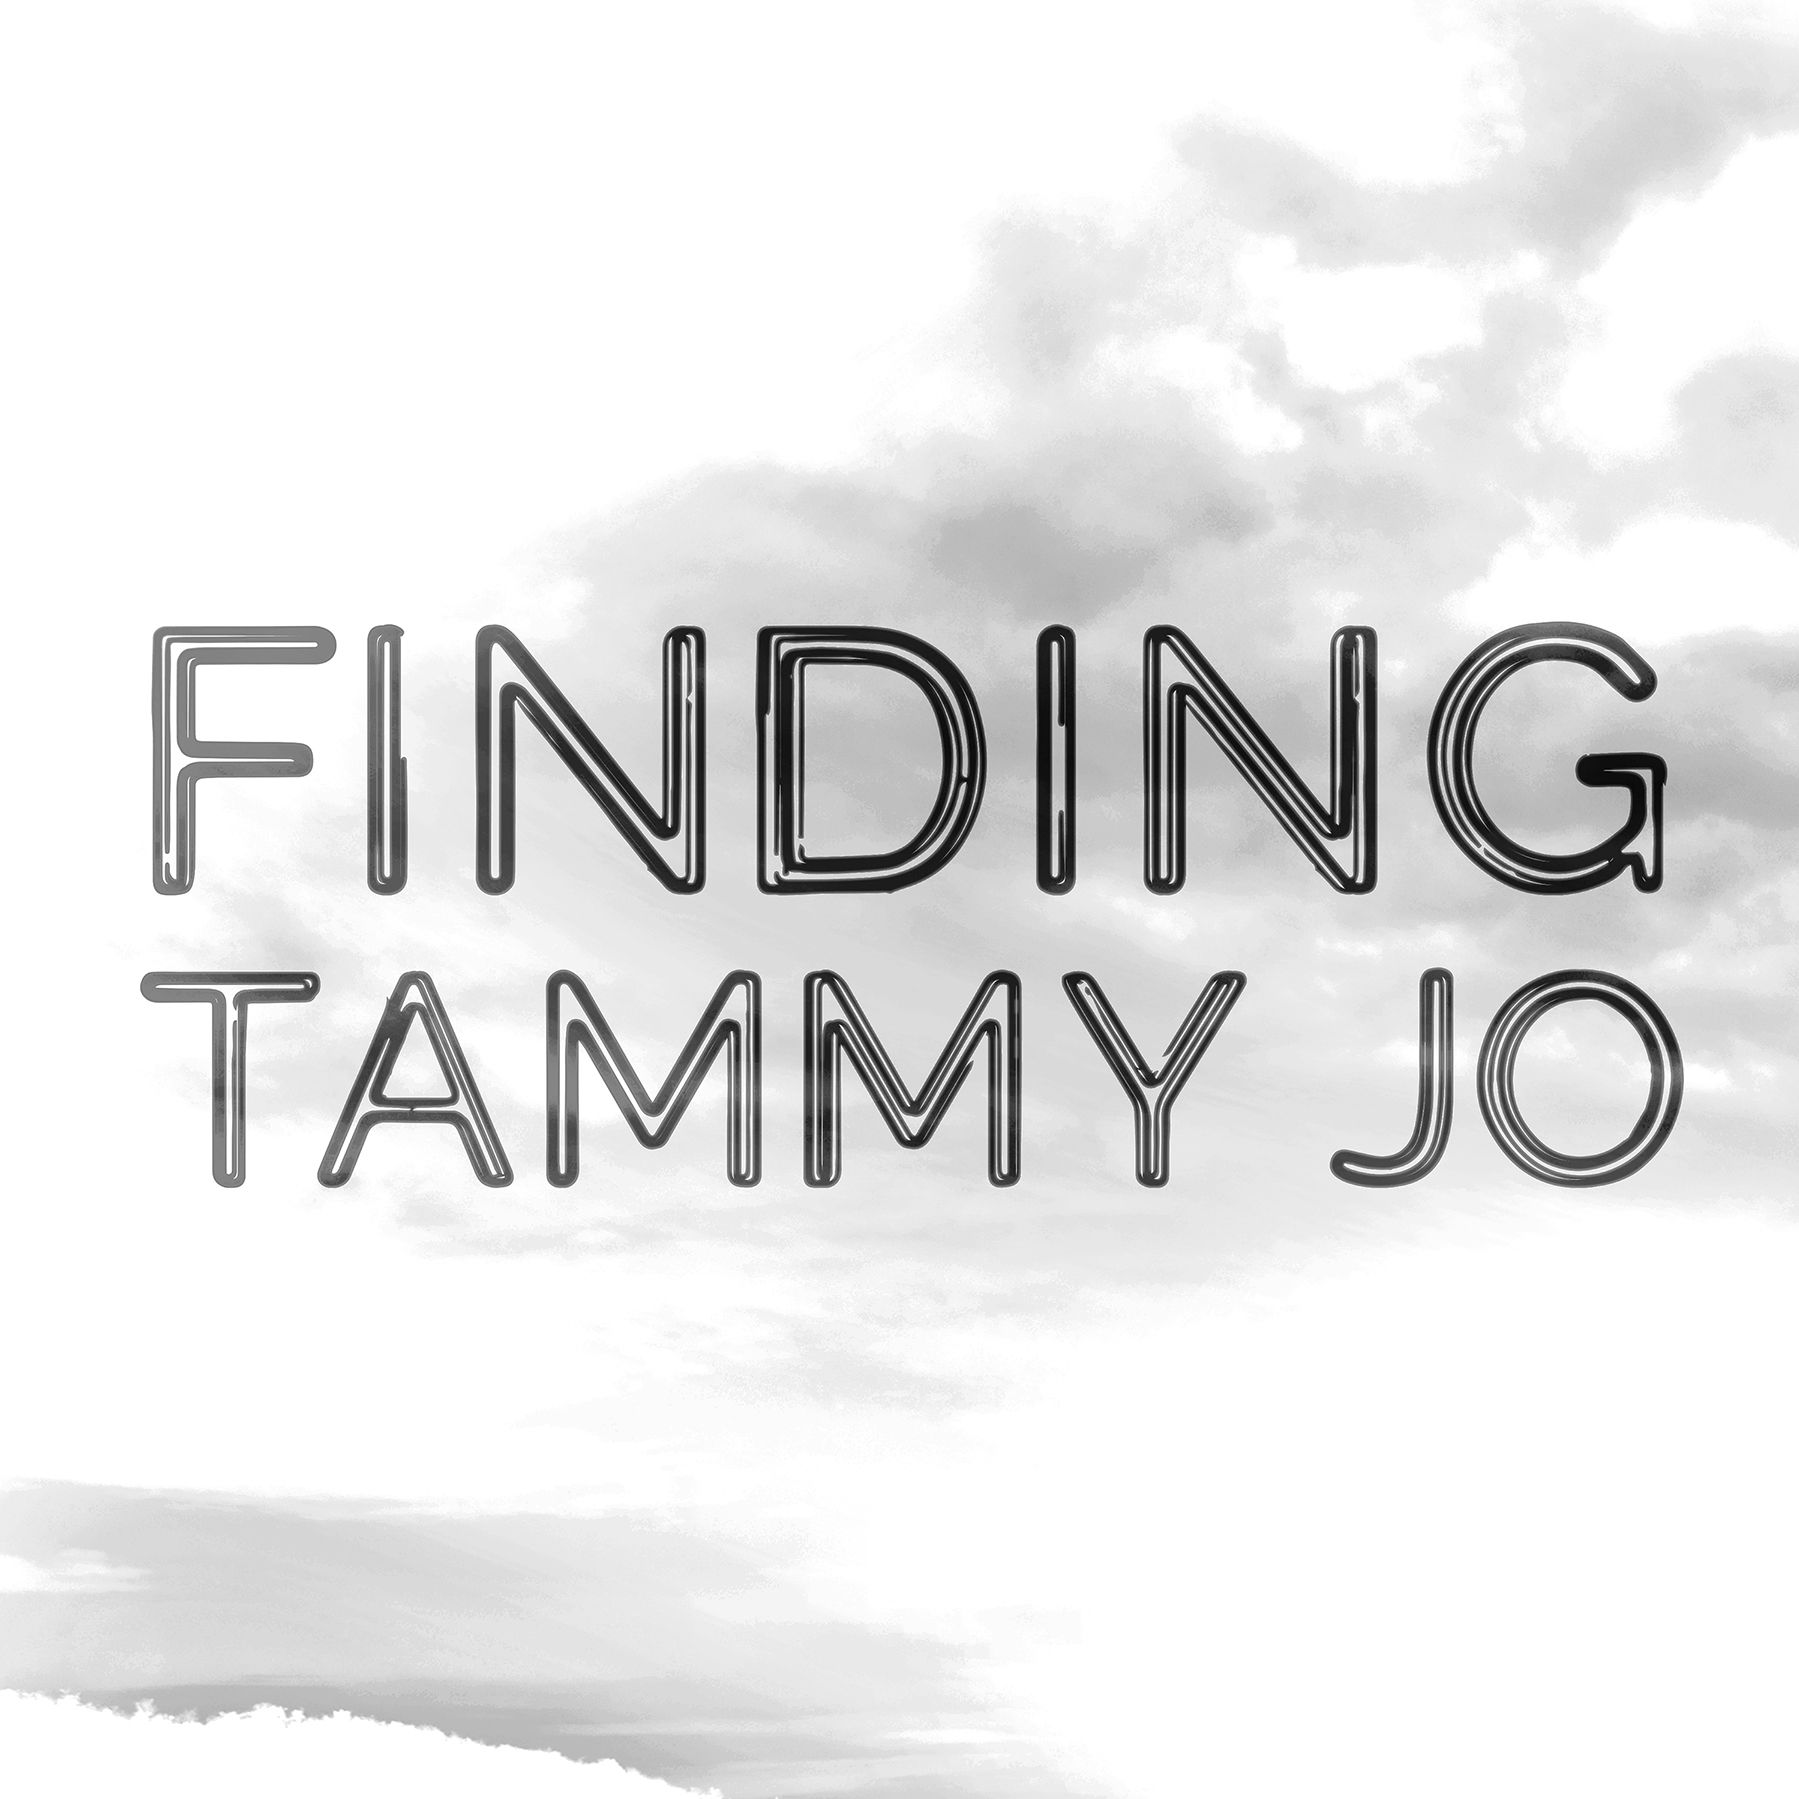 Image result for finding tammy jo